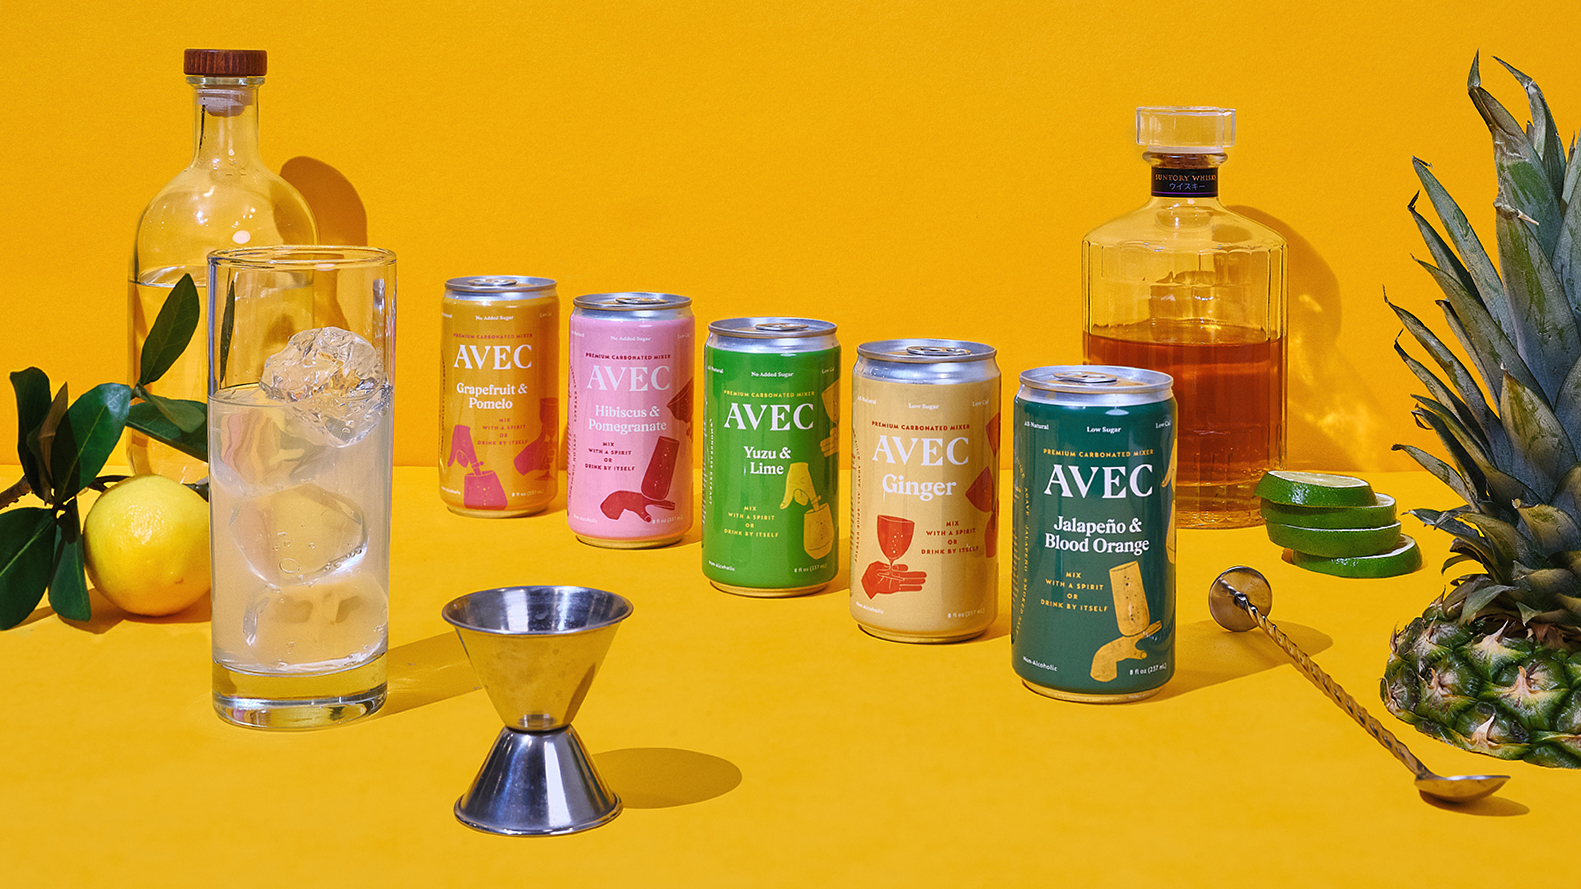 Avec Drinks The Smapler Variety Pack on yellow background